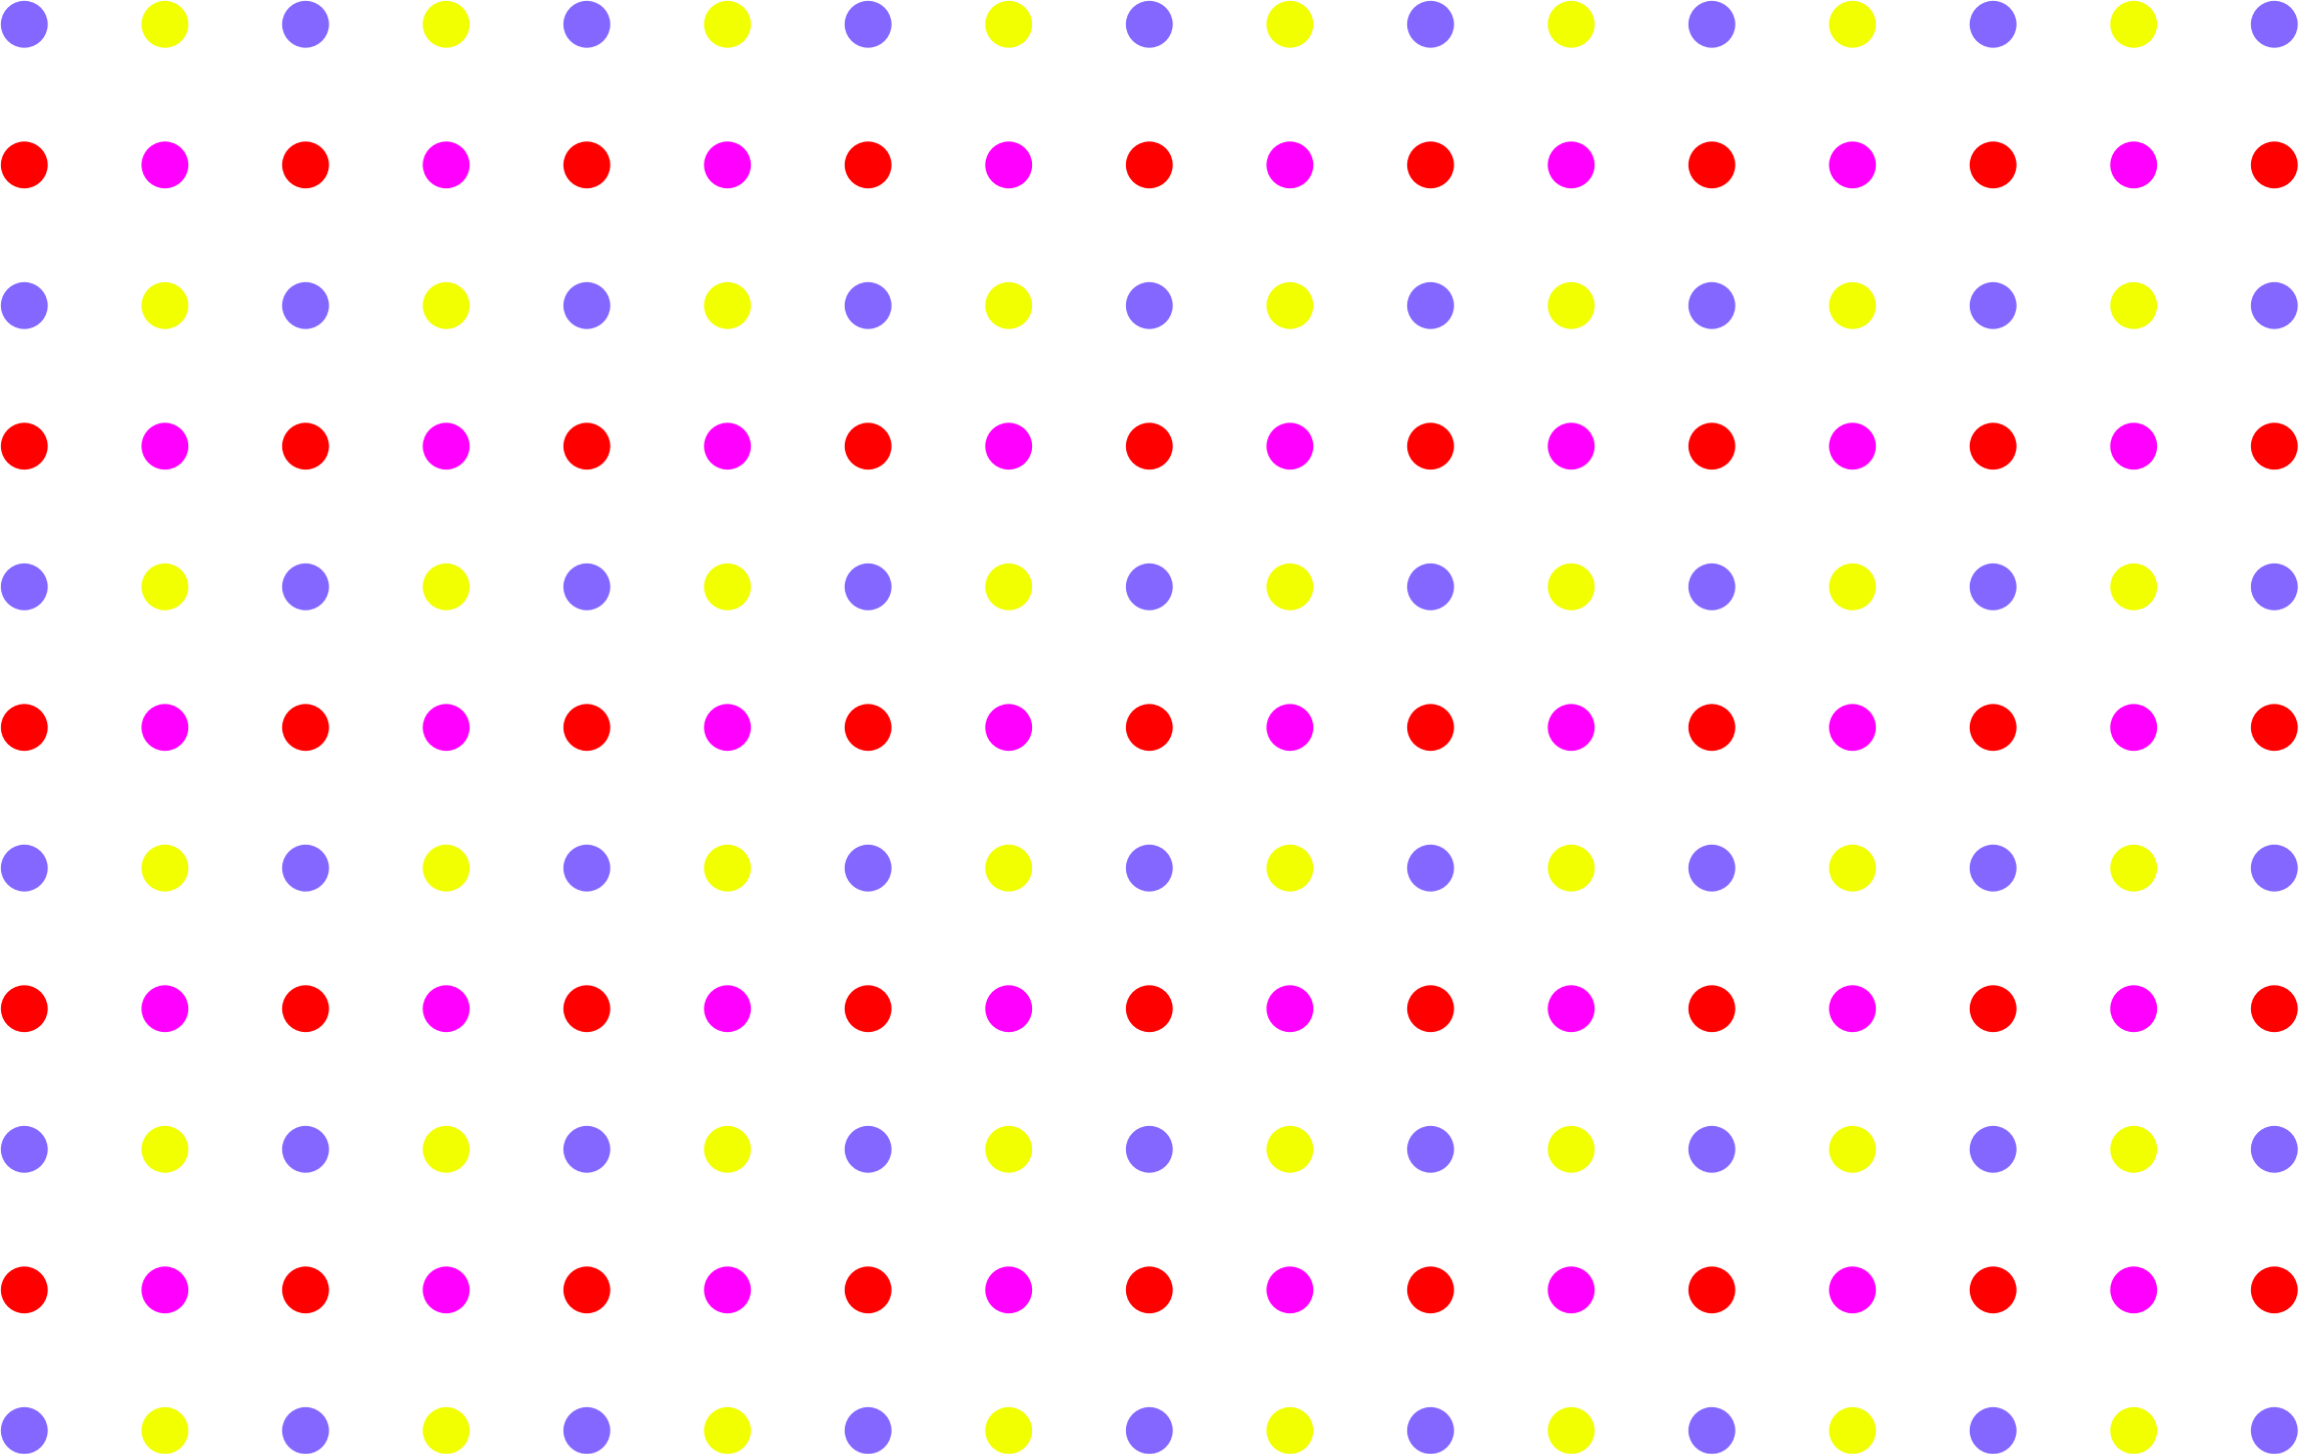 Blue polka dots png. Seamless colorful sparse dot